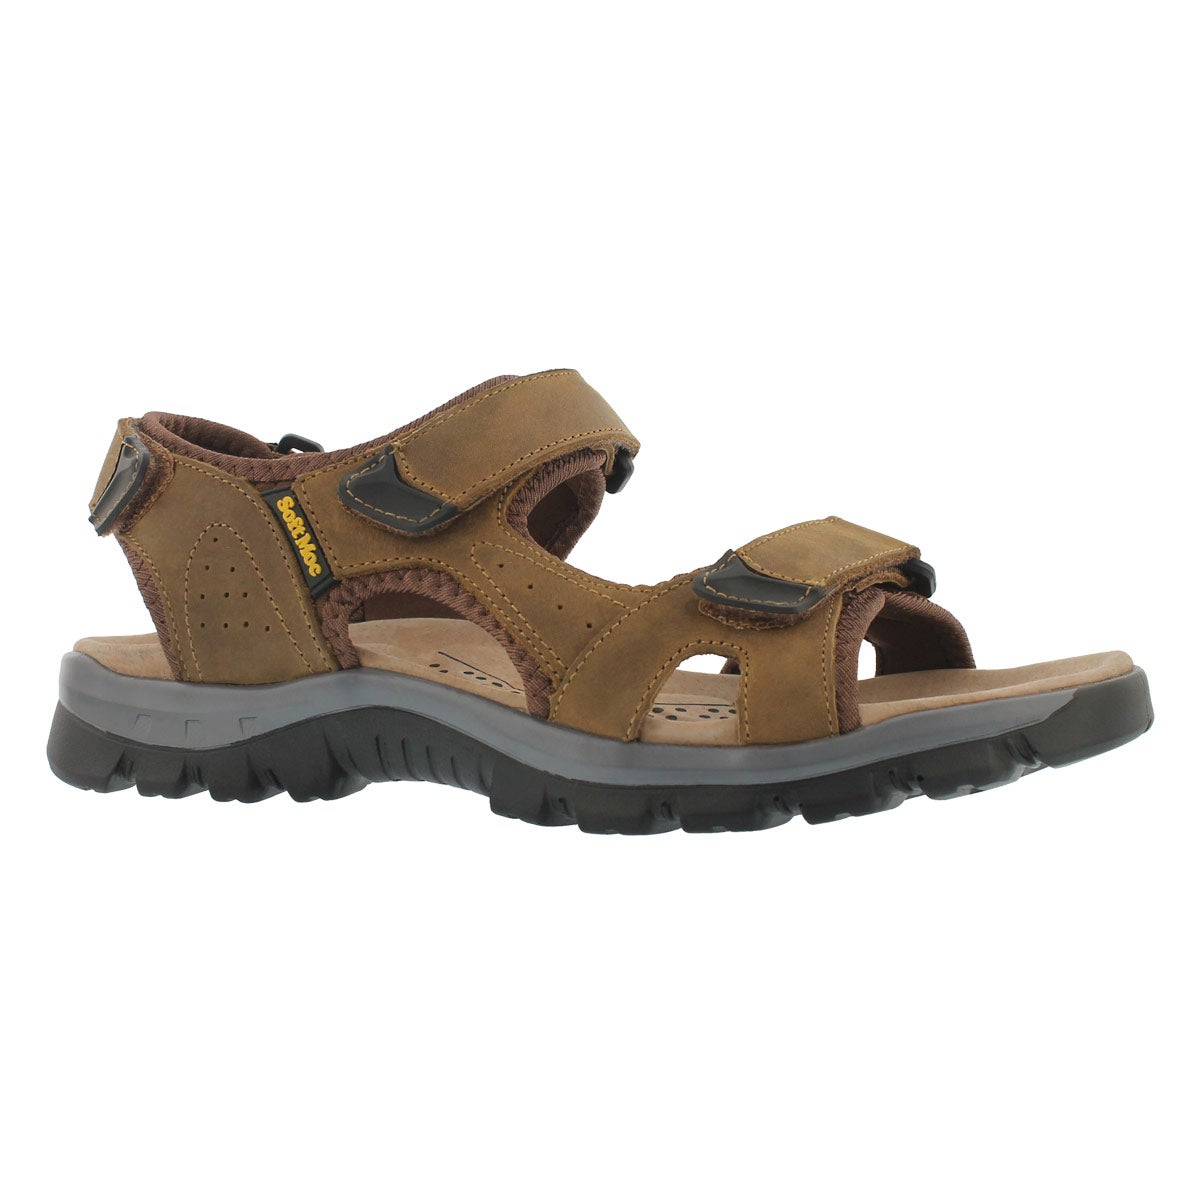 Men's KIRK tan 3 strap sport sandals